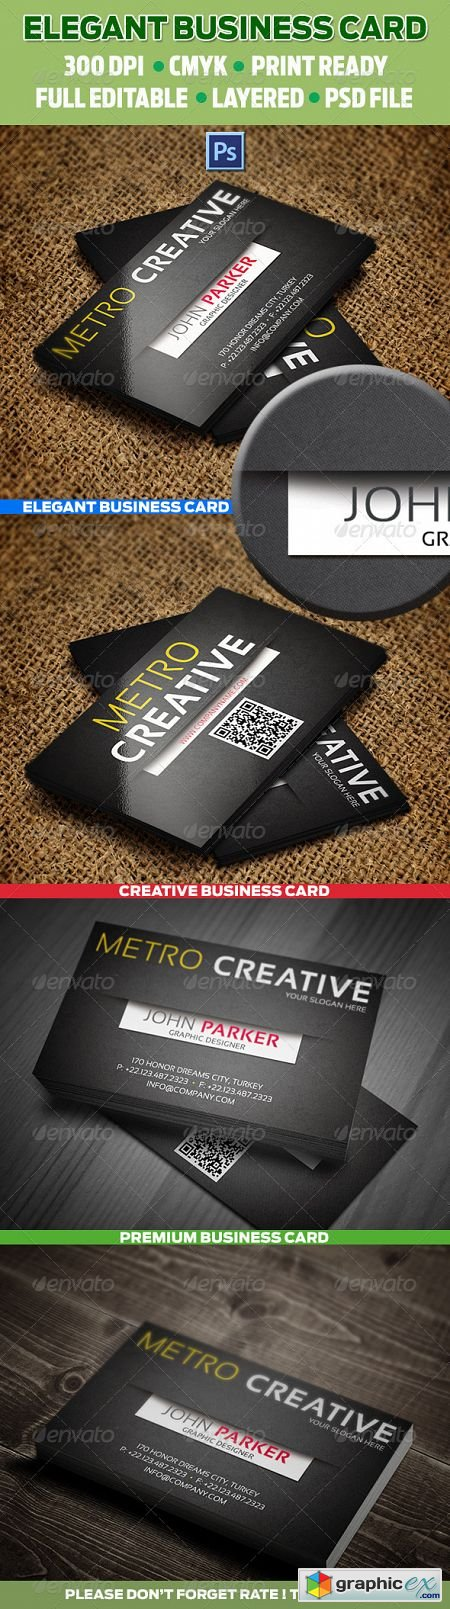 Creative Business Cards 23